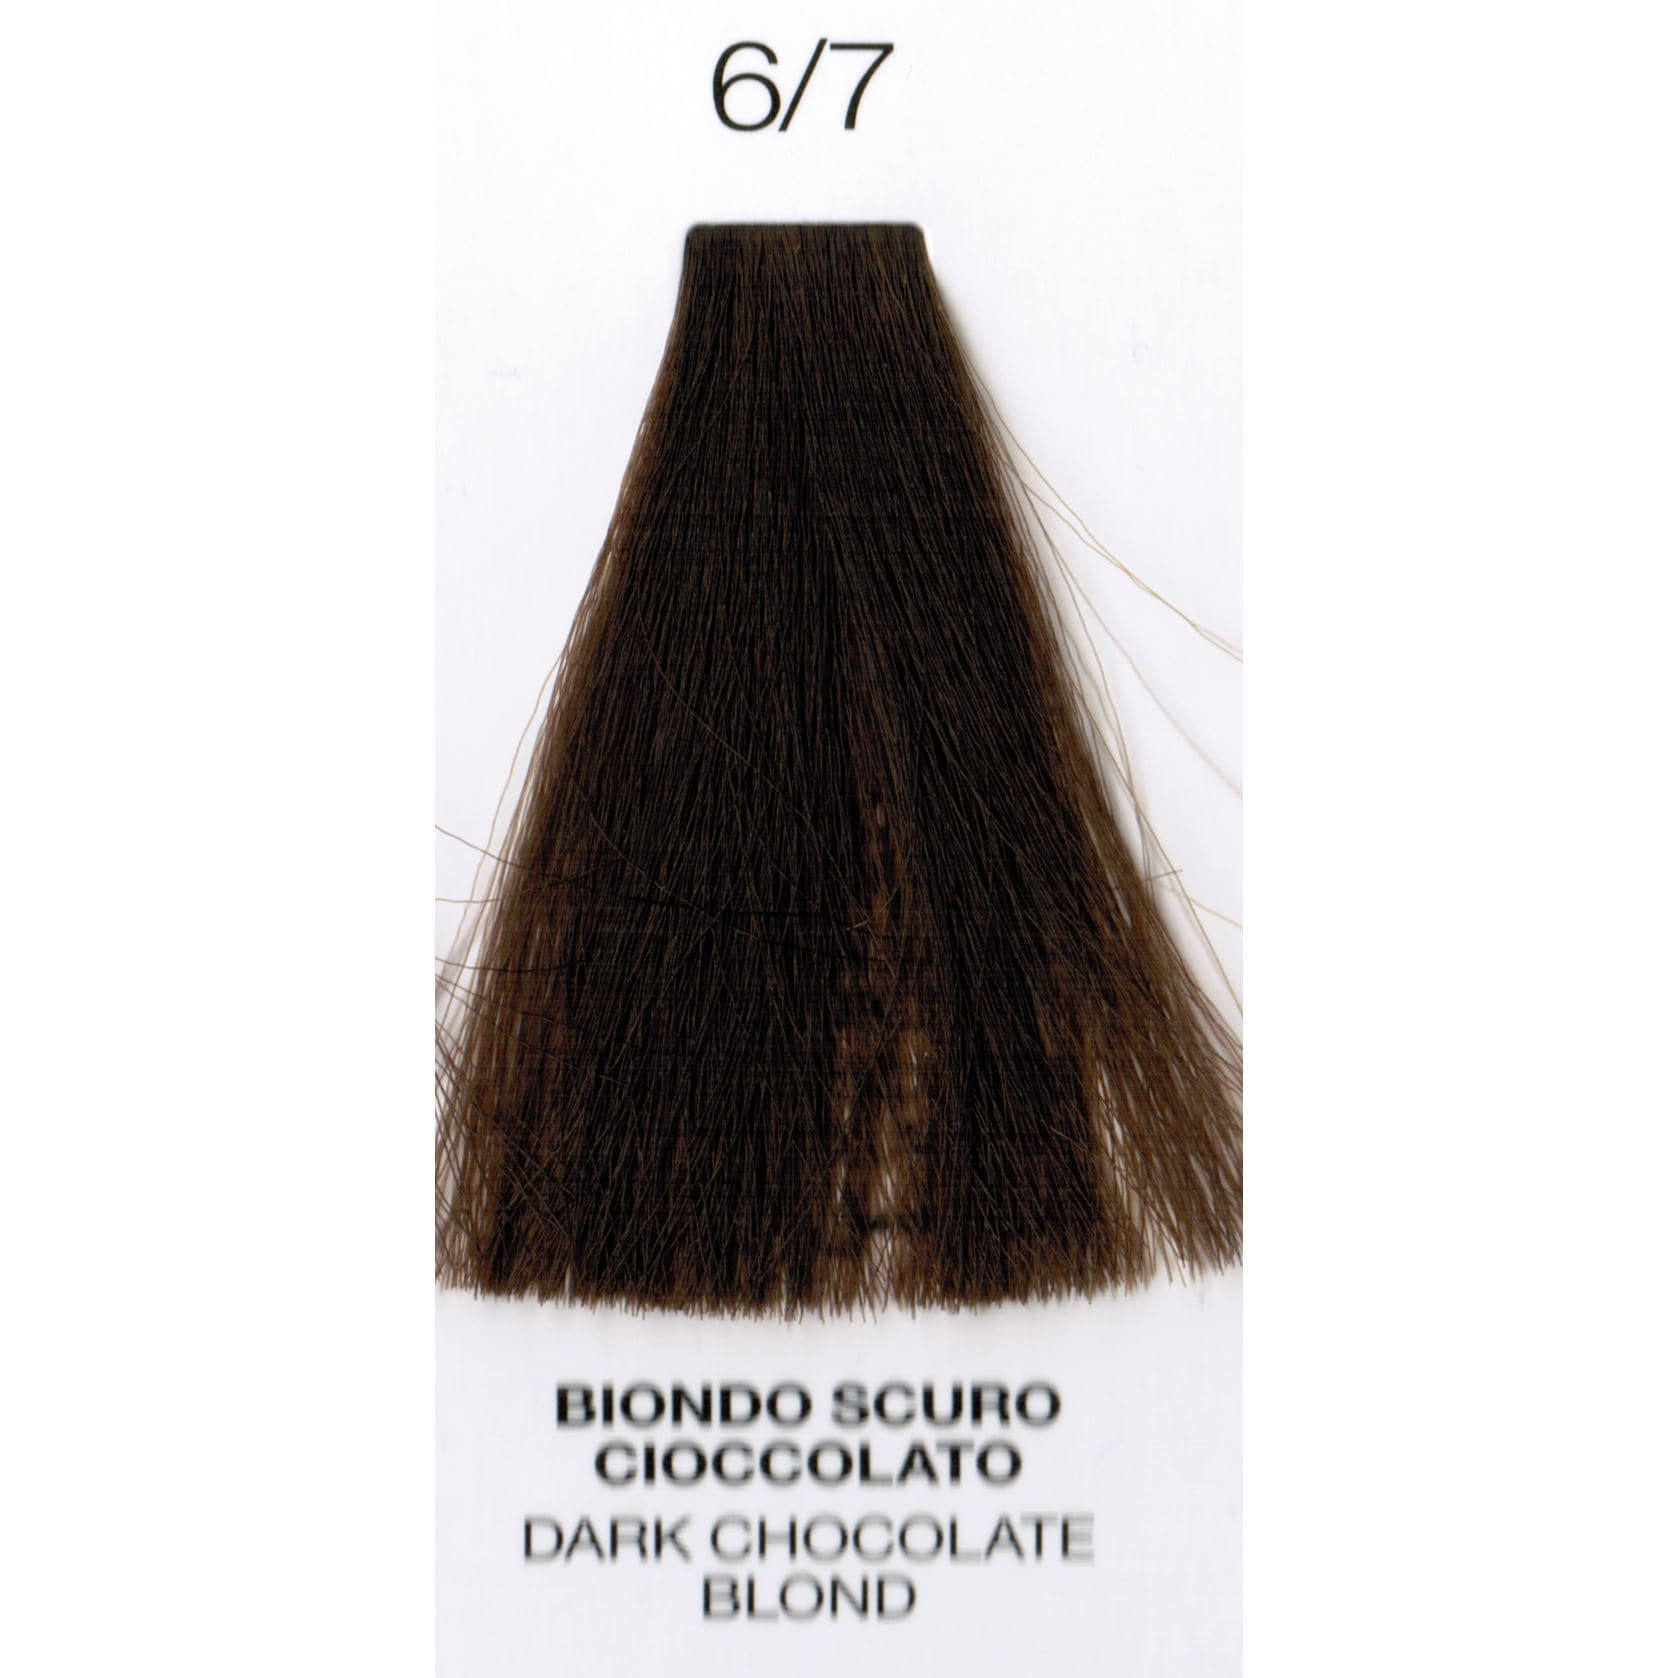 6/7 Dark Cocoa Blonde | Purity | Ammonia-Free Permanent Hair Color - SH Salons